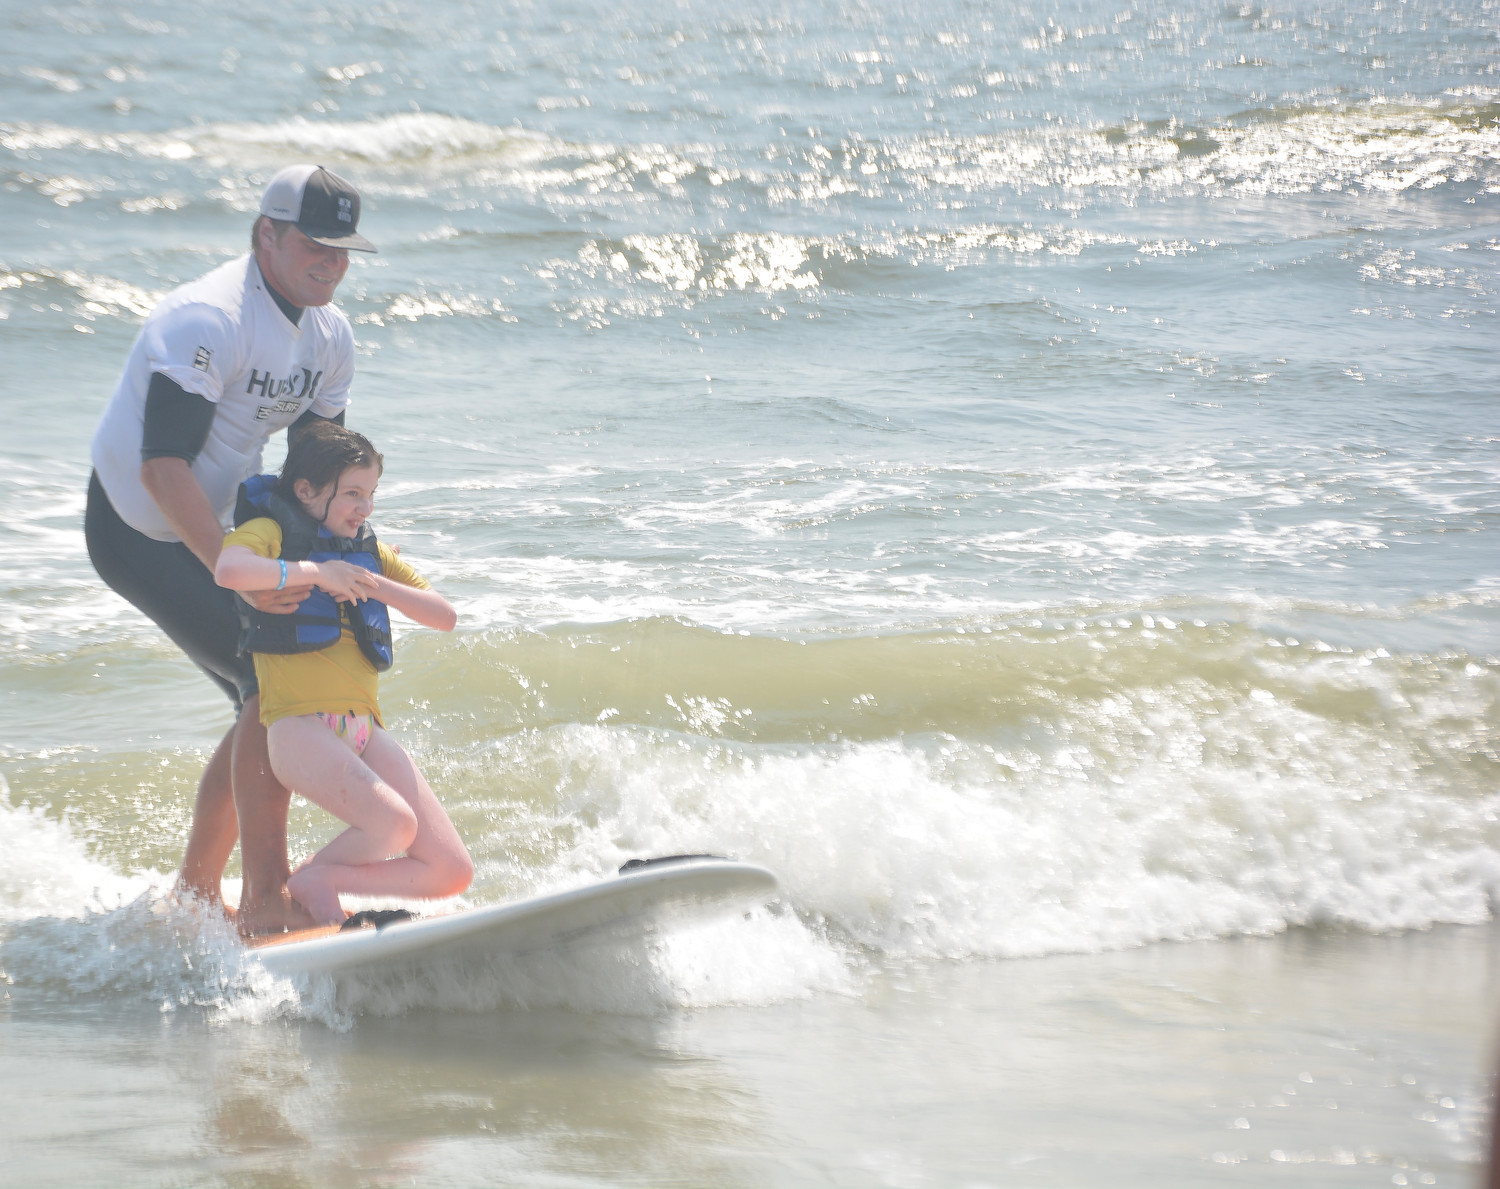 Teadora Wollemberg experienced the thrill of surfing with instructor Cliff Skudin.